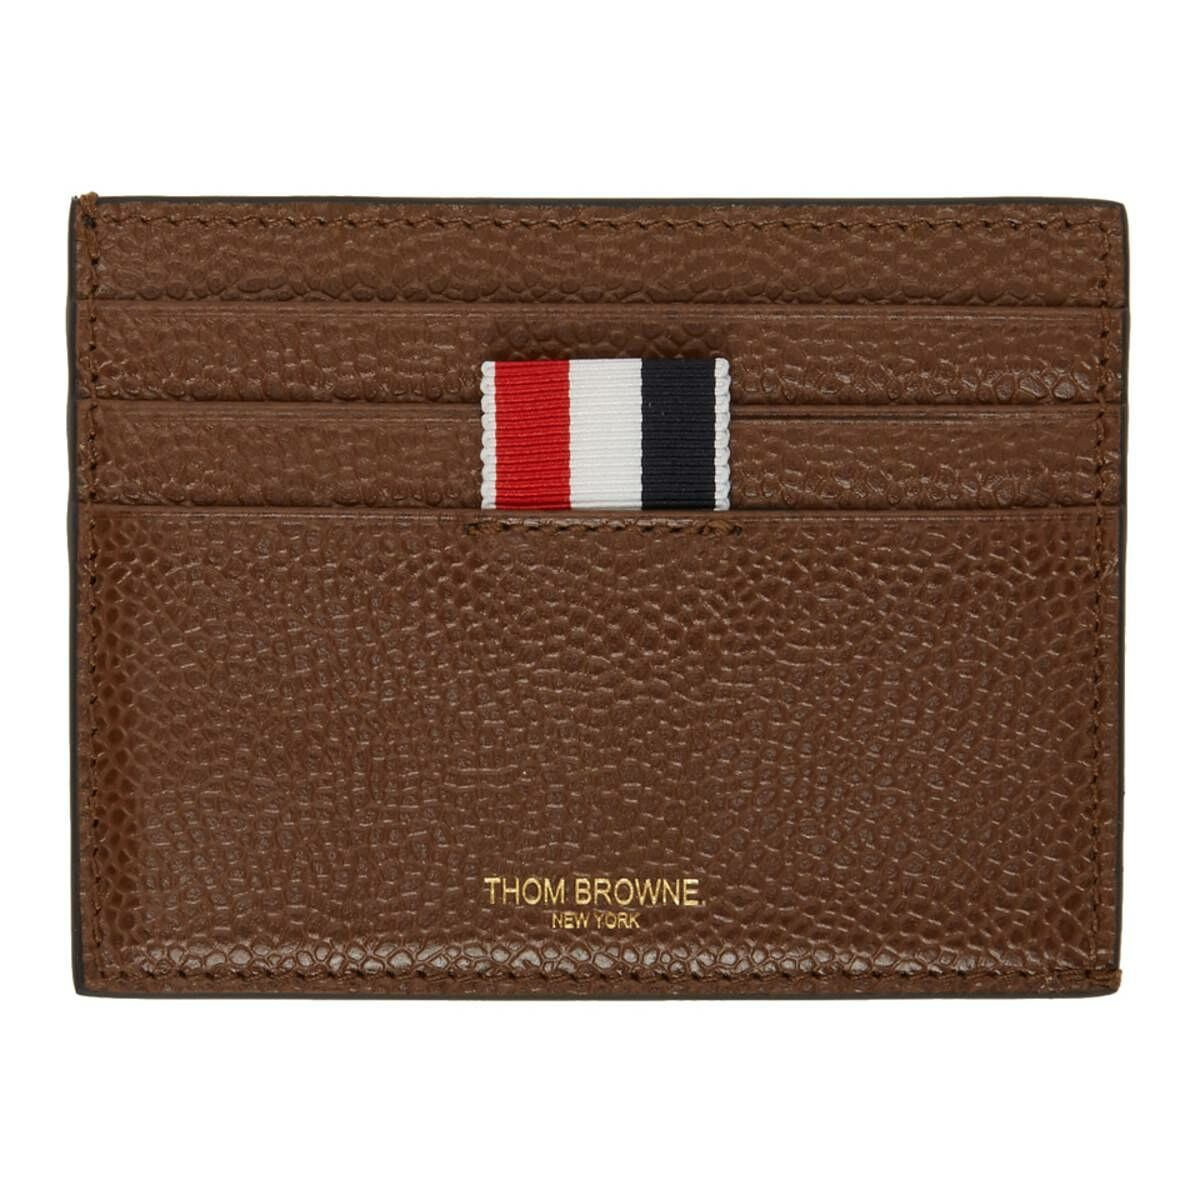 Thom Browne Brown Double Sided 4-Bar Card Holder Ssense USA MEN Men ACCESSORIES Mens JEWELRY